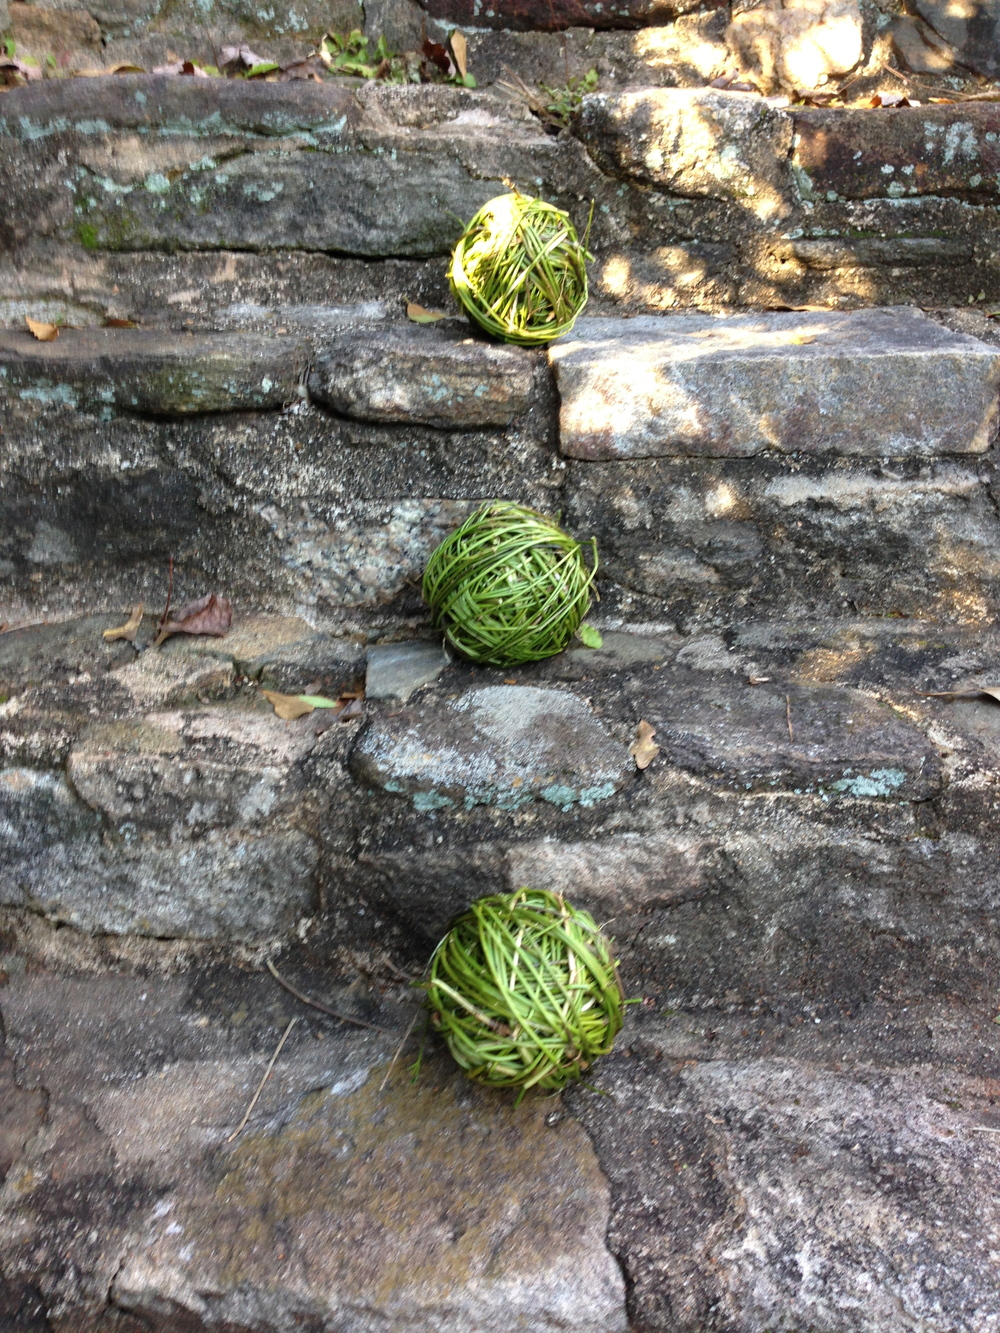 Vines wrapped into balls, on stone steps.